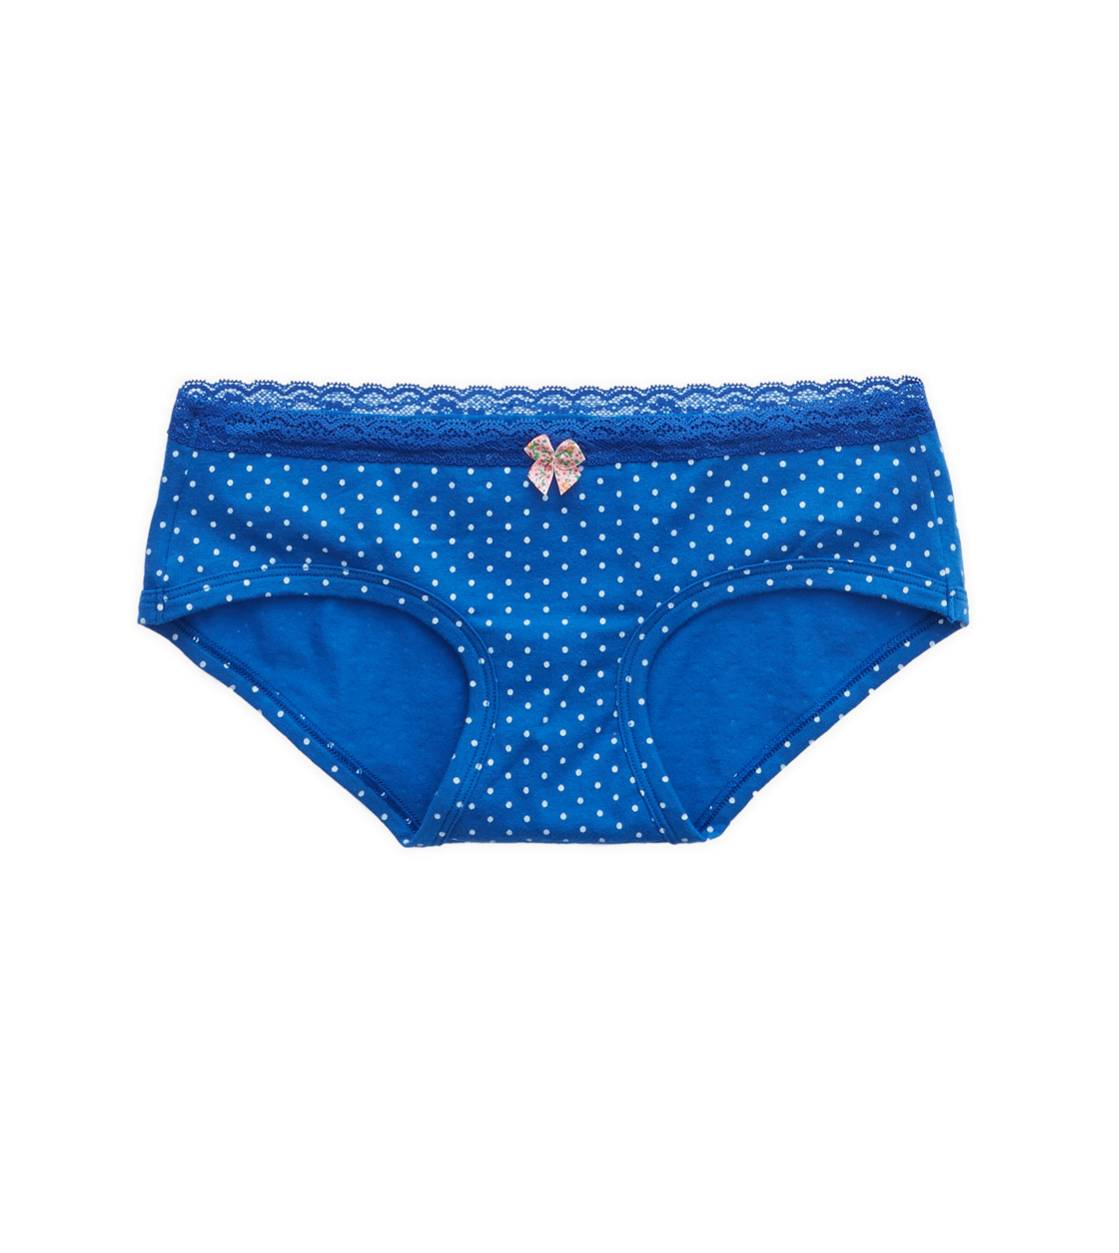 Blue Stead Aerie Lace Trim Boybrief